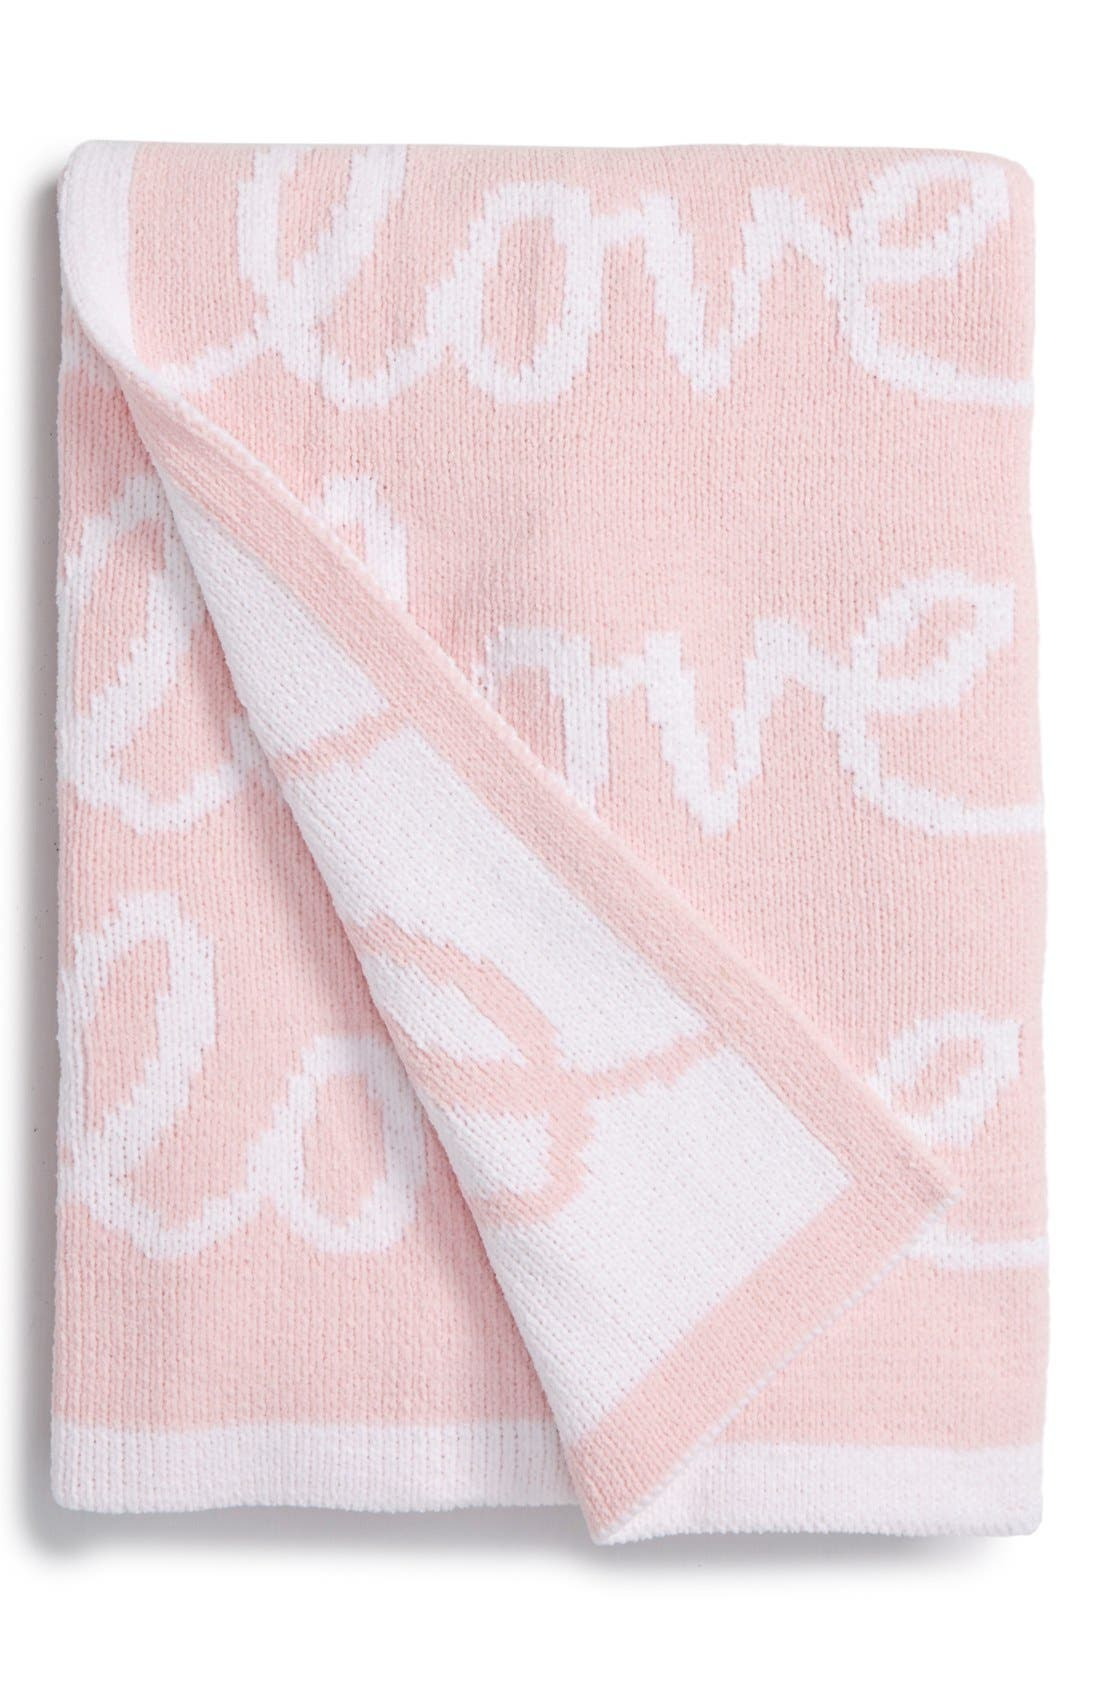 Chenille Blanket,                             Main thumbnail 1, color,                             Pink Baby Love